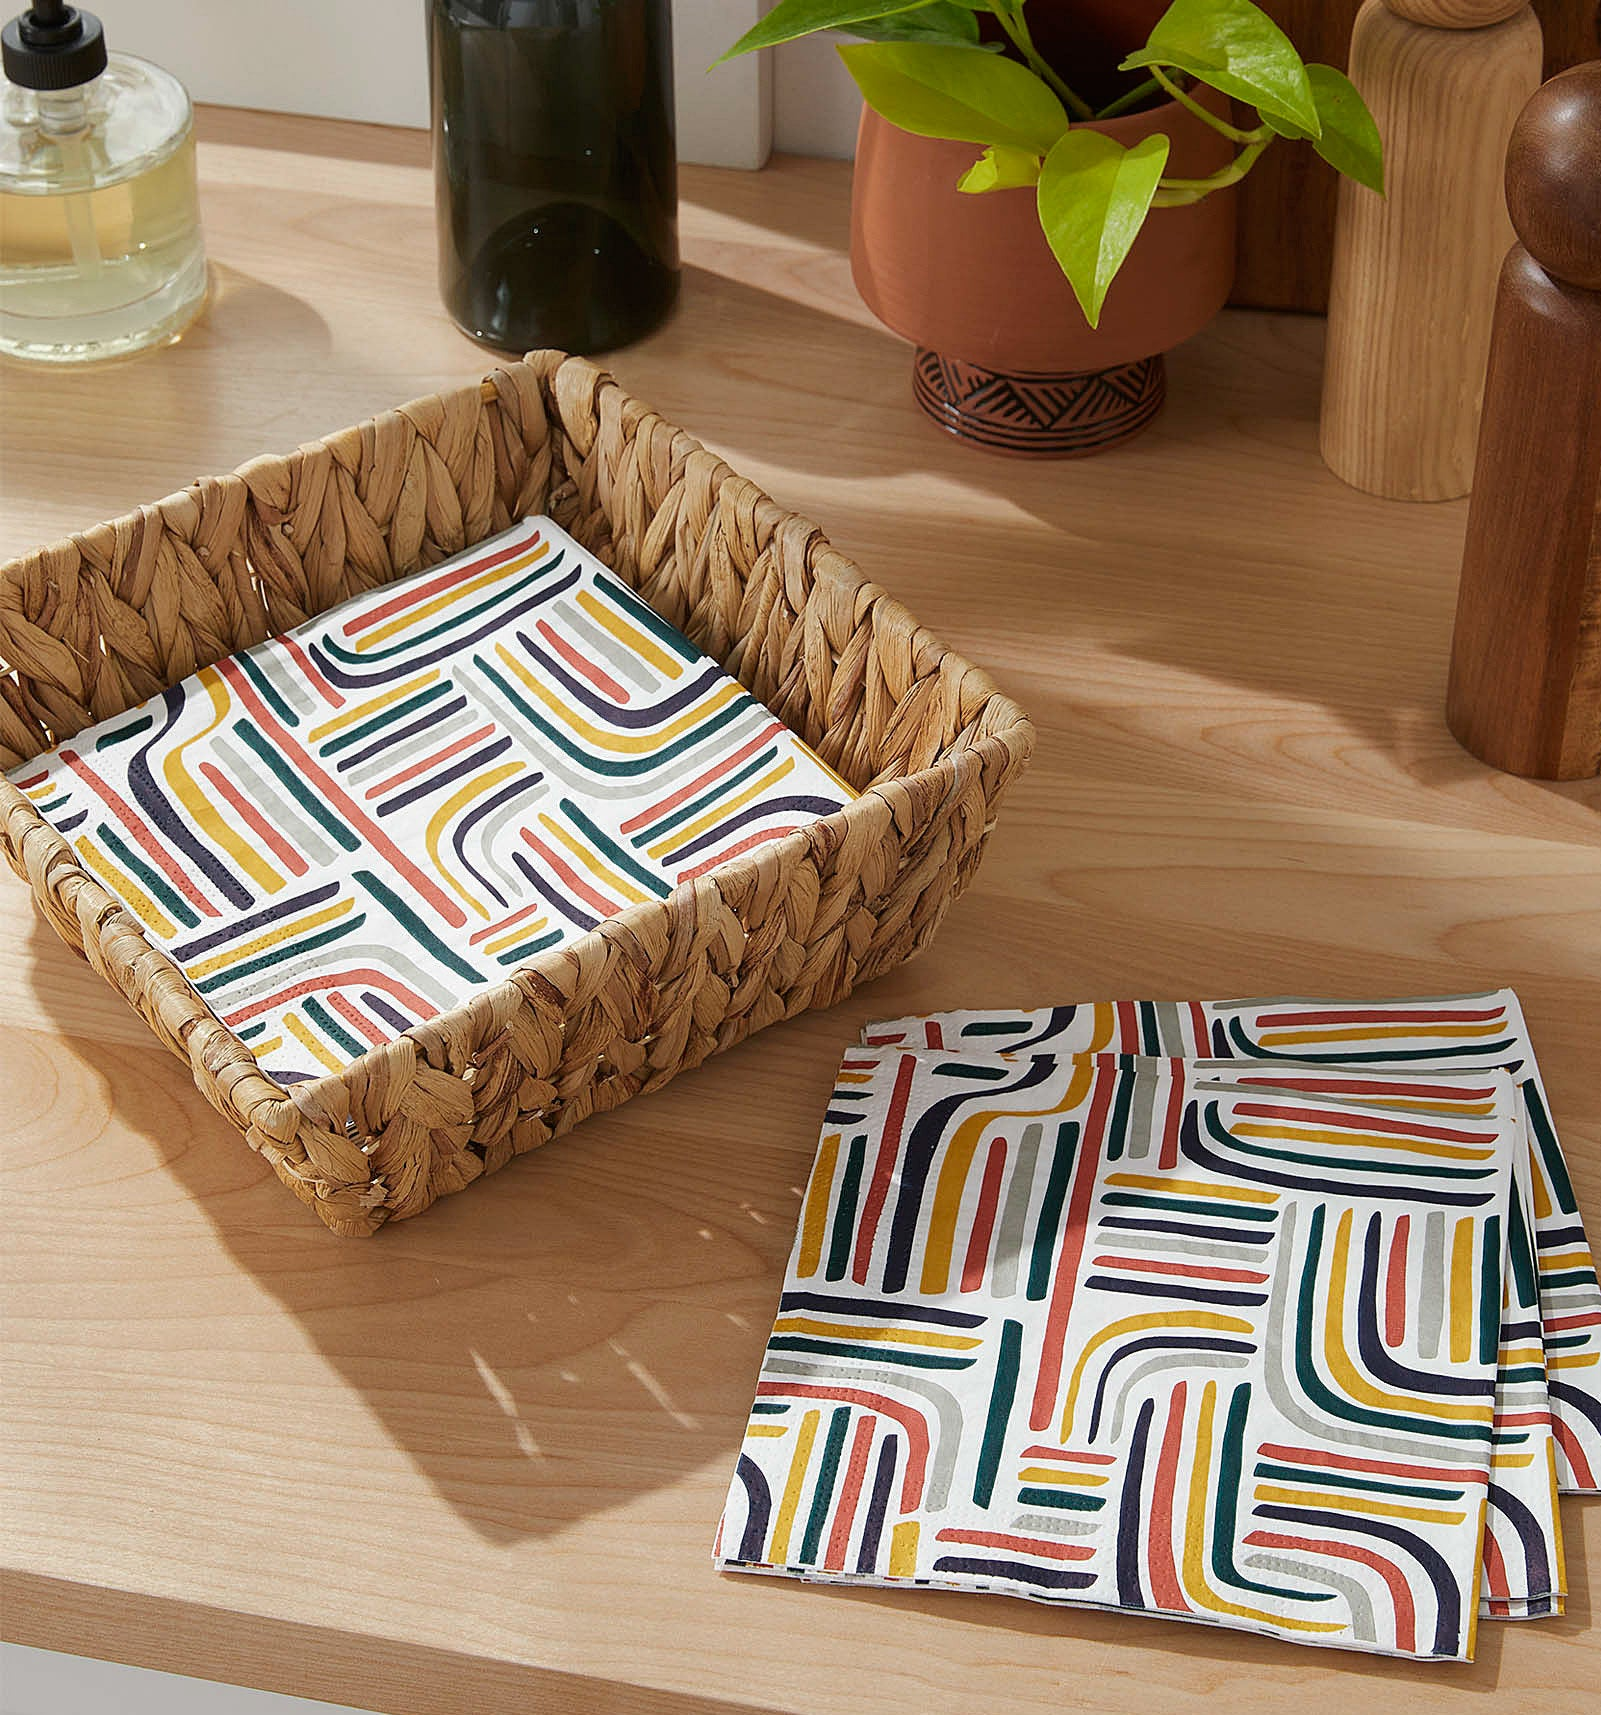 Vibrant paper napkins in and beside a cute basket on a counter